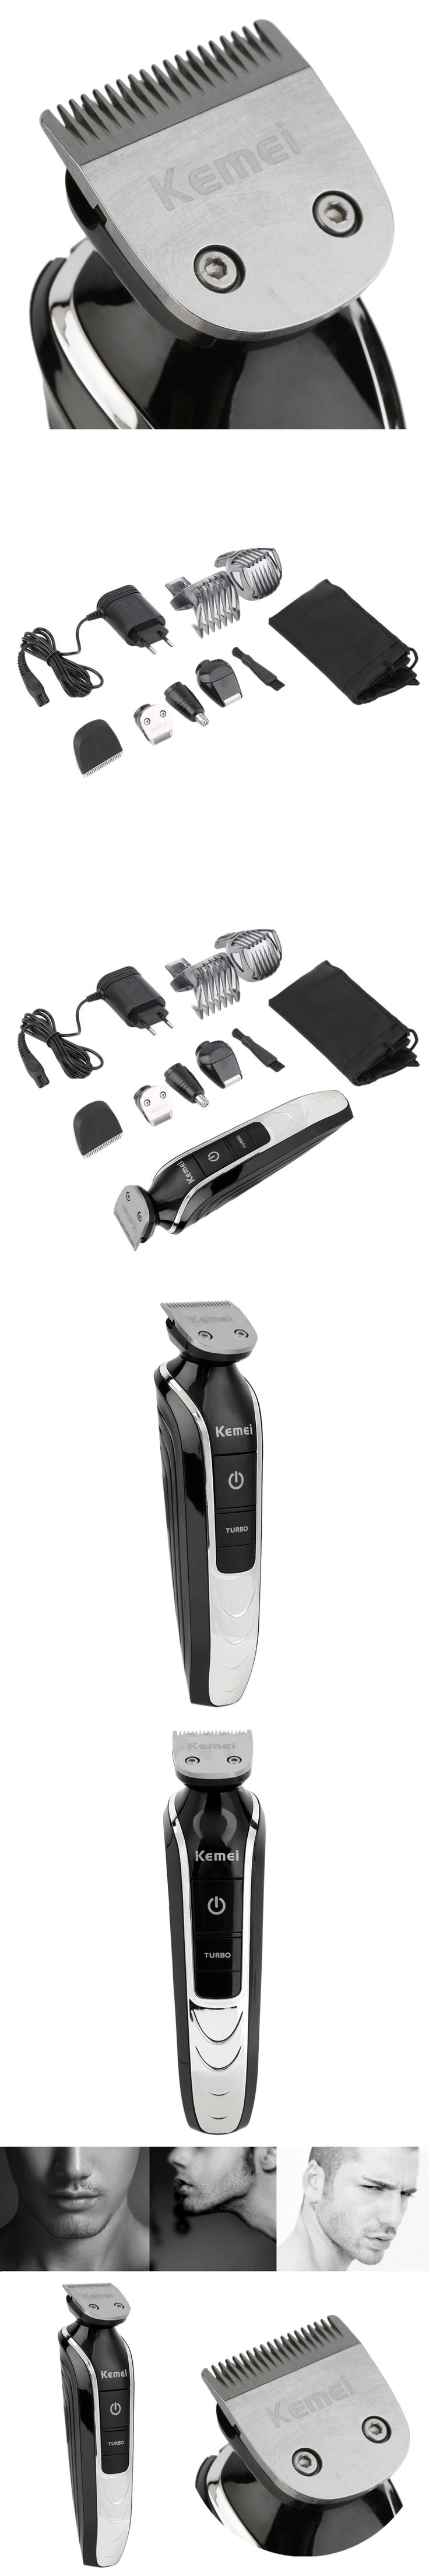 Kemei 5 in 1 Professional Electric Beard Cutter Hair Trimmer 360 Degree Hair Clipper Trimmer Shaving Hair Cut Tool